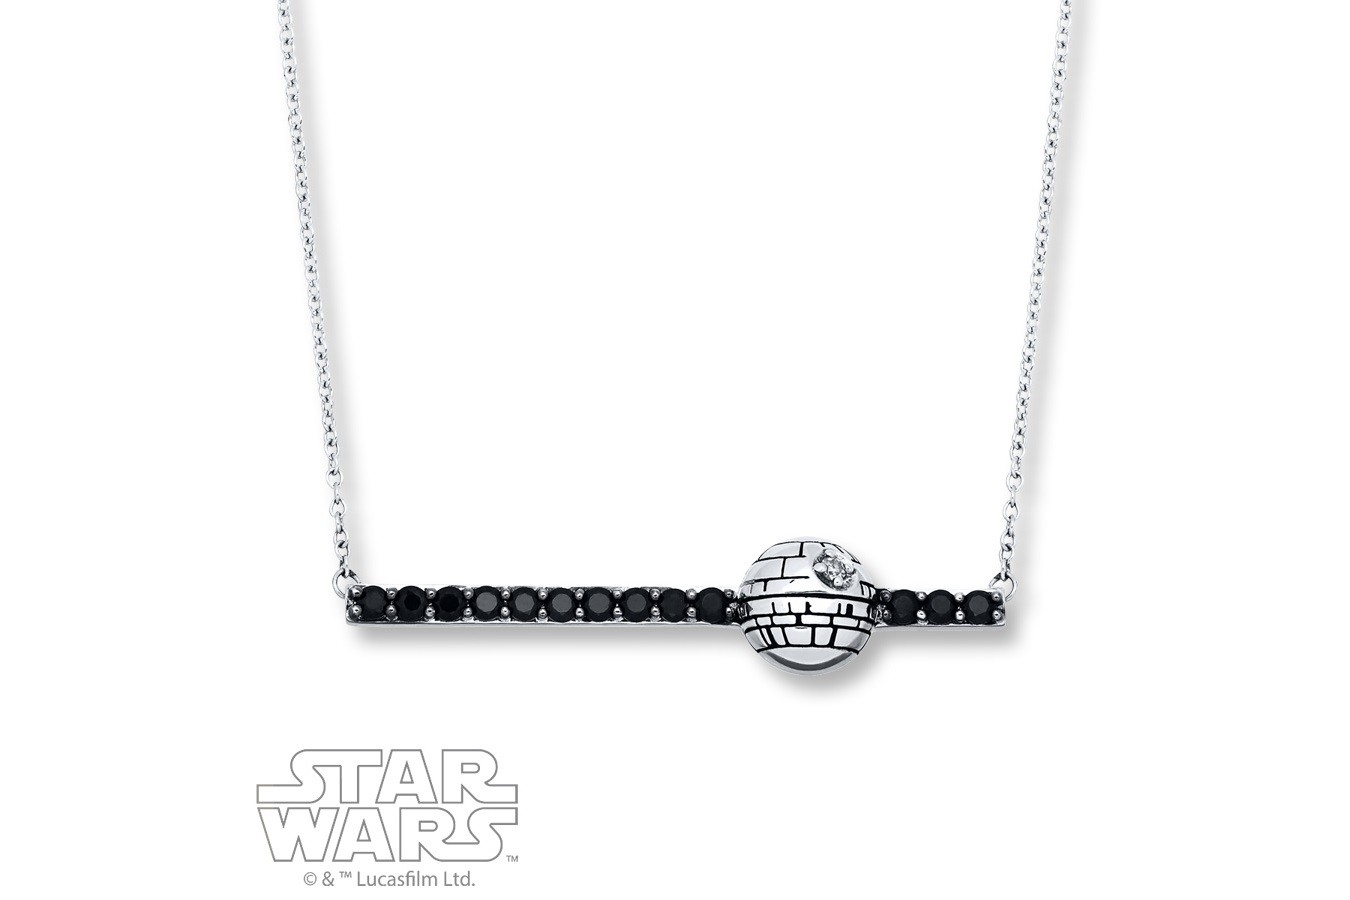 New Death Star necklace from Kay Jewelers